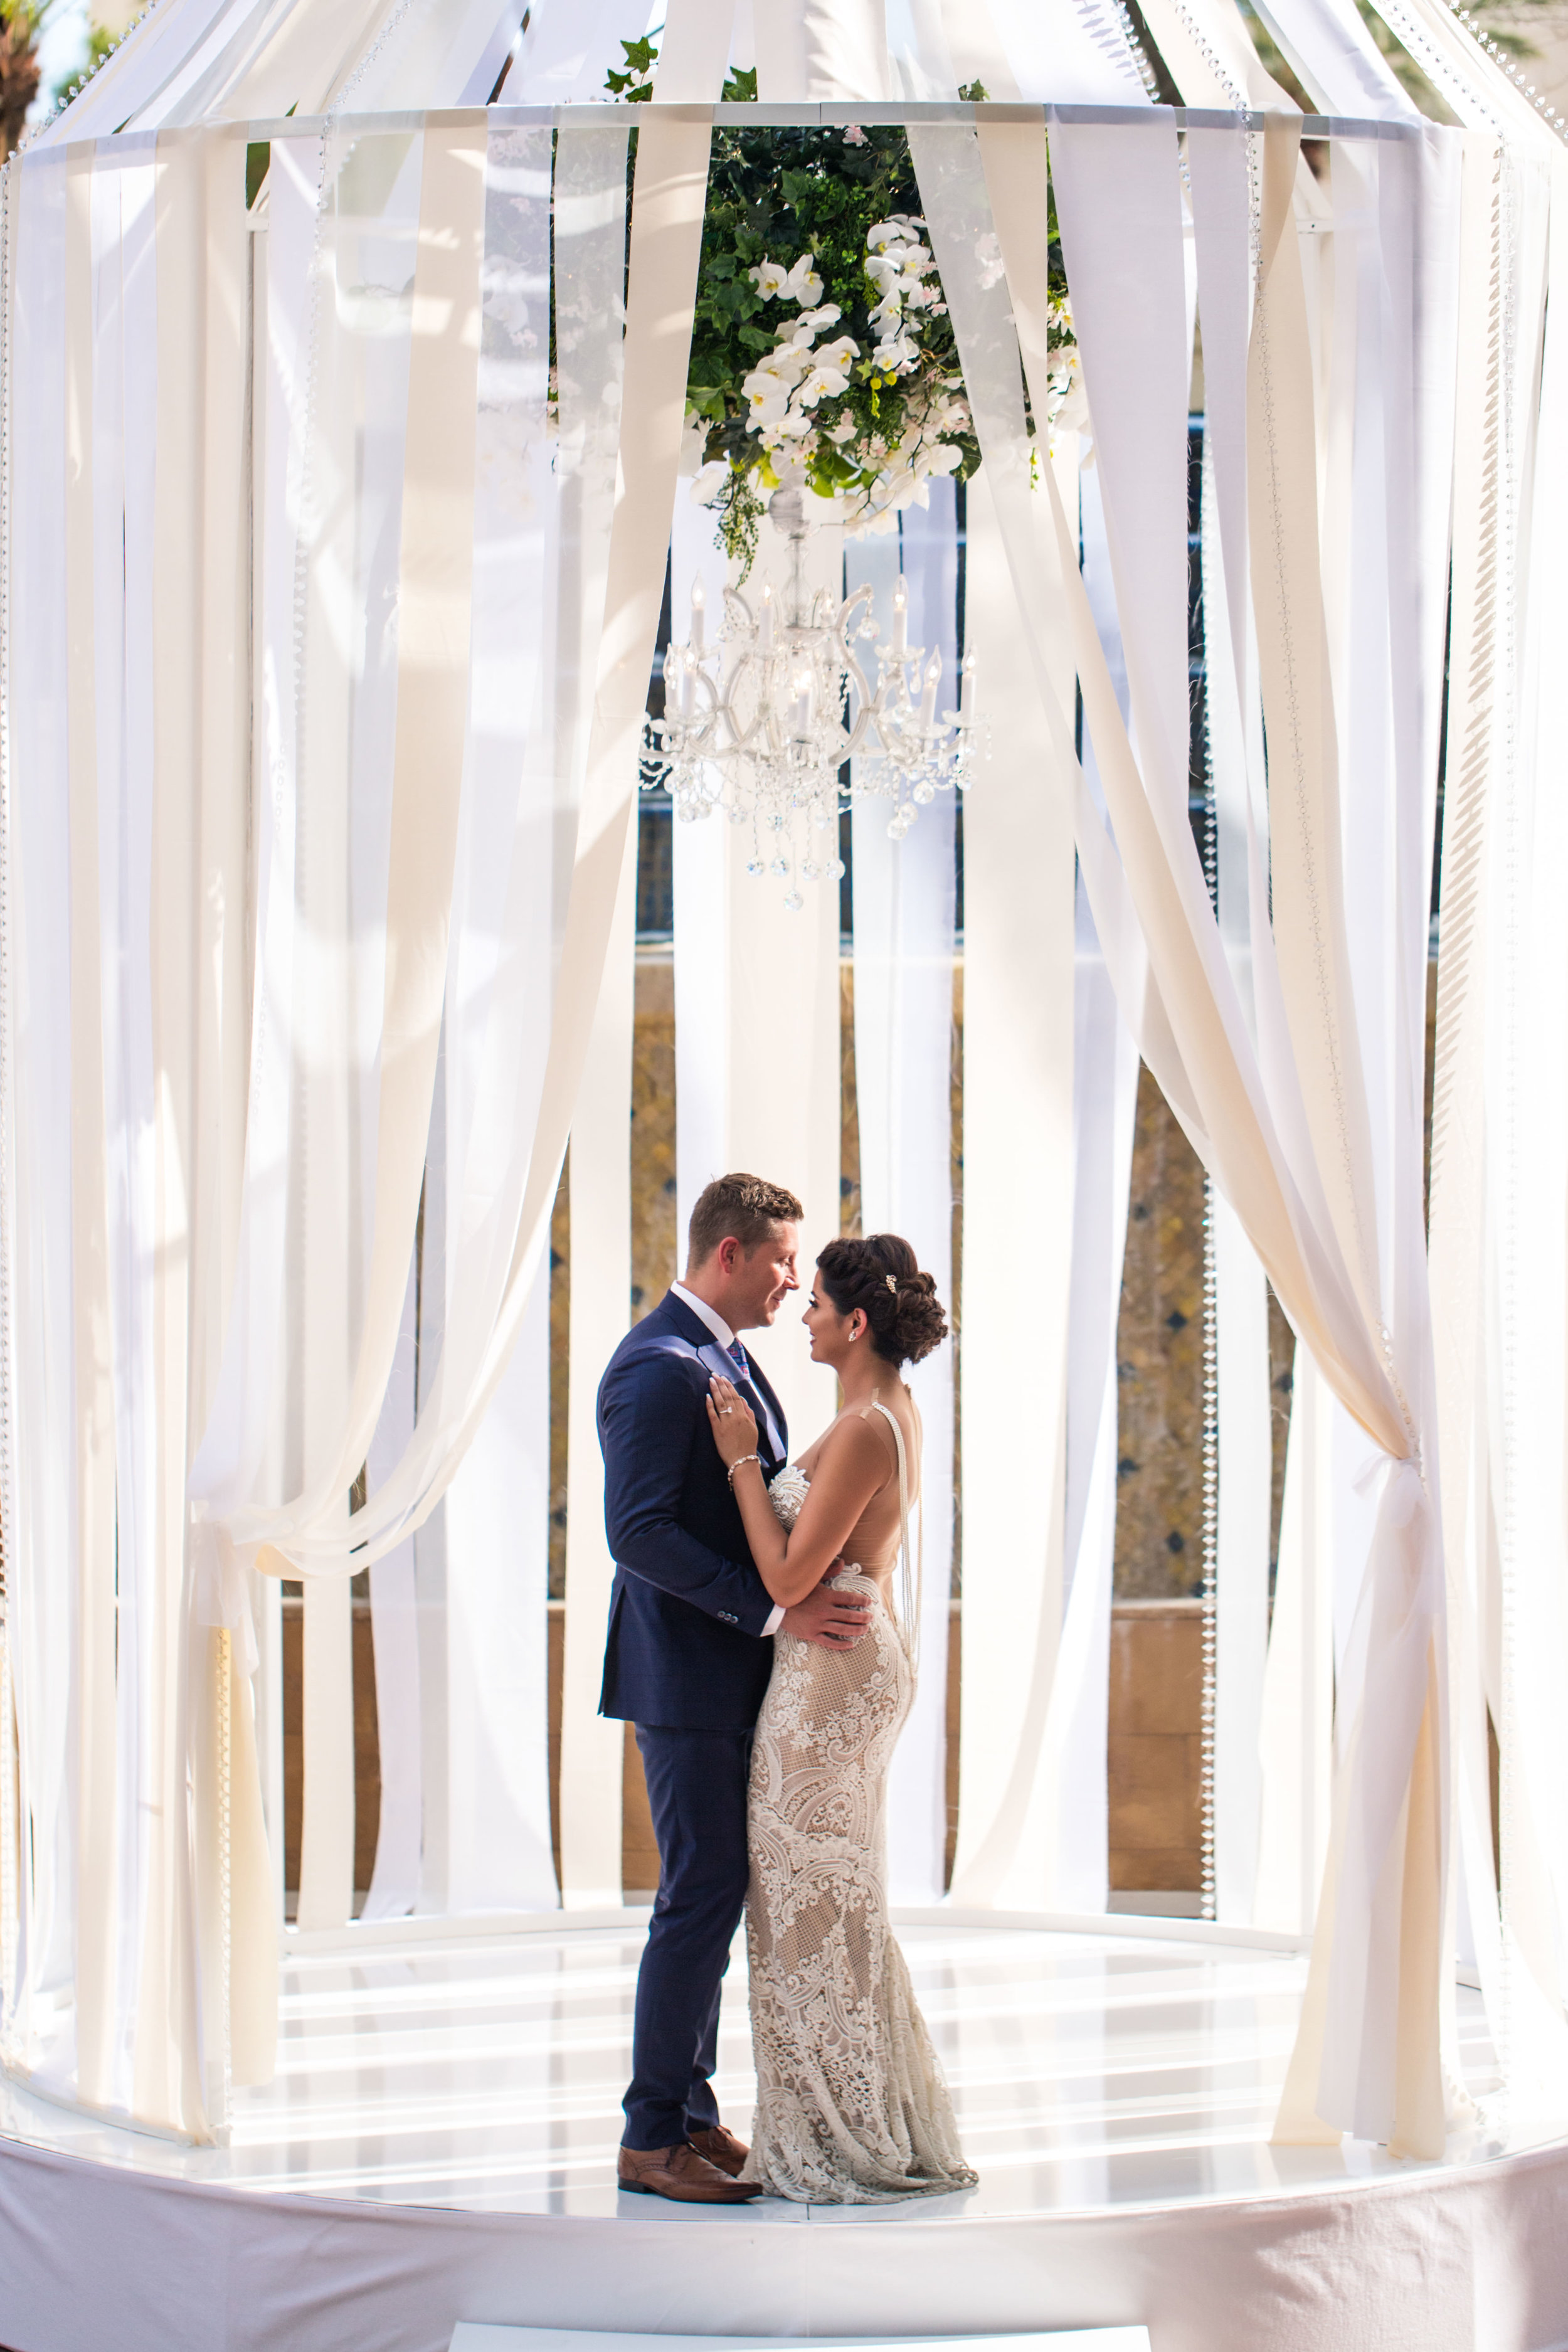 Bride and groom in birdcage under floral chandelier.Wedding Planning by  Andrea Eppolito Events  · Photography by  Shandro Photo   · Wedding Venue  Four Seasons Las Vegas  · Floral and Decor by  Destination by Design  · Cake by  Four Seasons Las Vegas  · Chandeliers and Lighting by  LED Unplugged  · Dress by  Berta